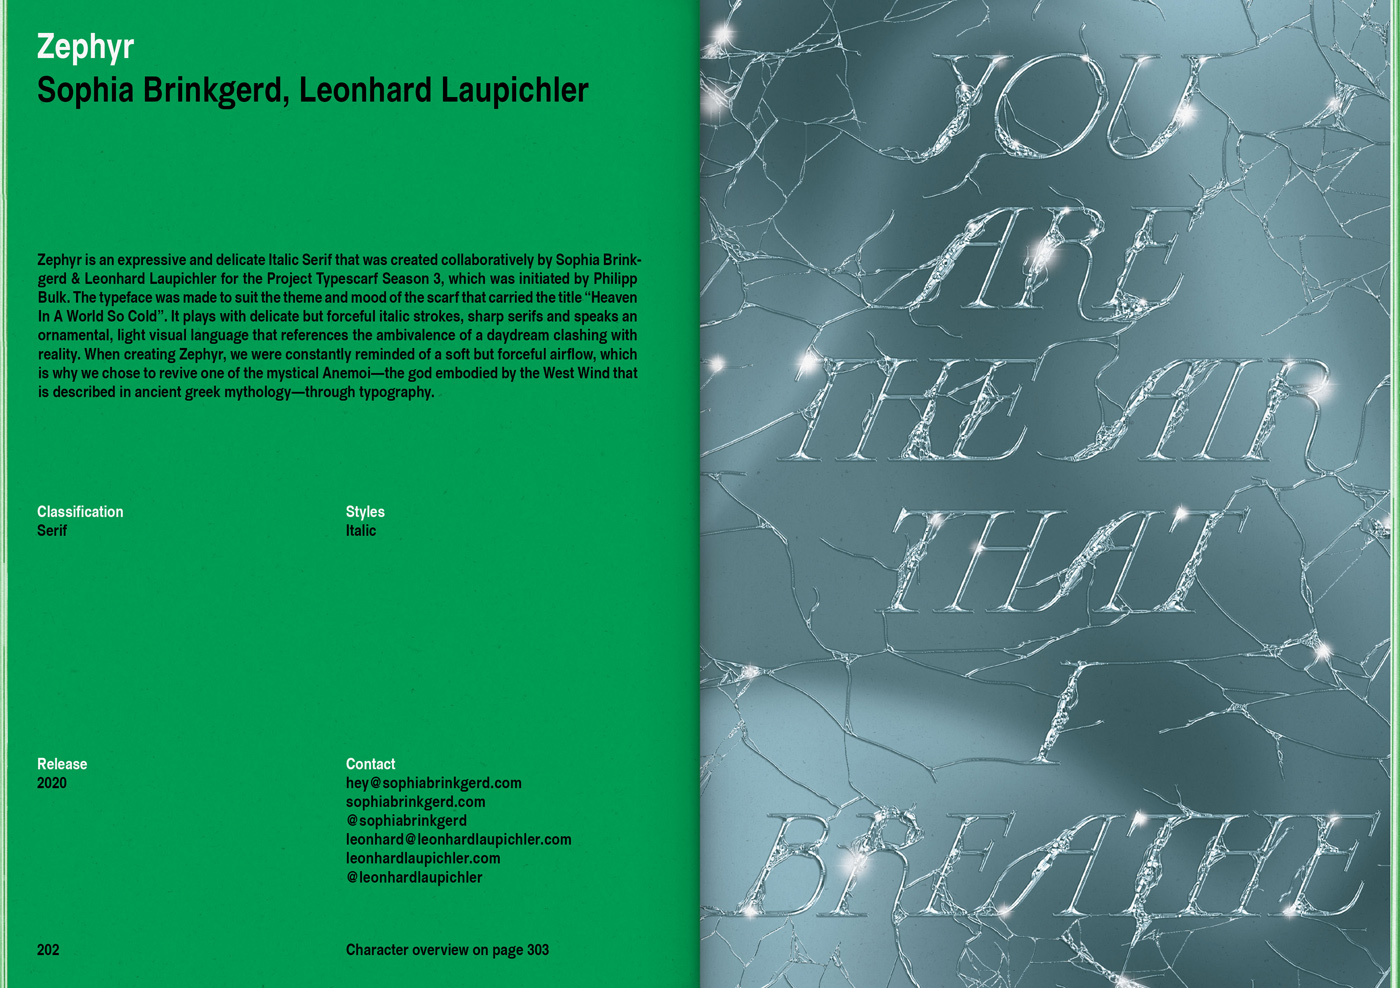 12 collide24 New Aesthetic 2 - Sophia Brinkgerd and Leonhard Laupichler celebrate the release of New Aesthetic 2, this time in collaboration with publishing house Sorry Press